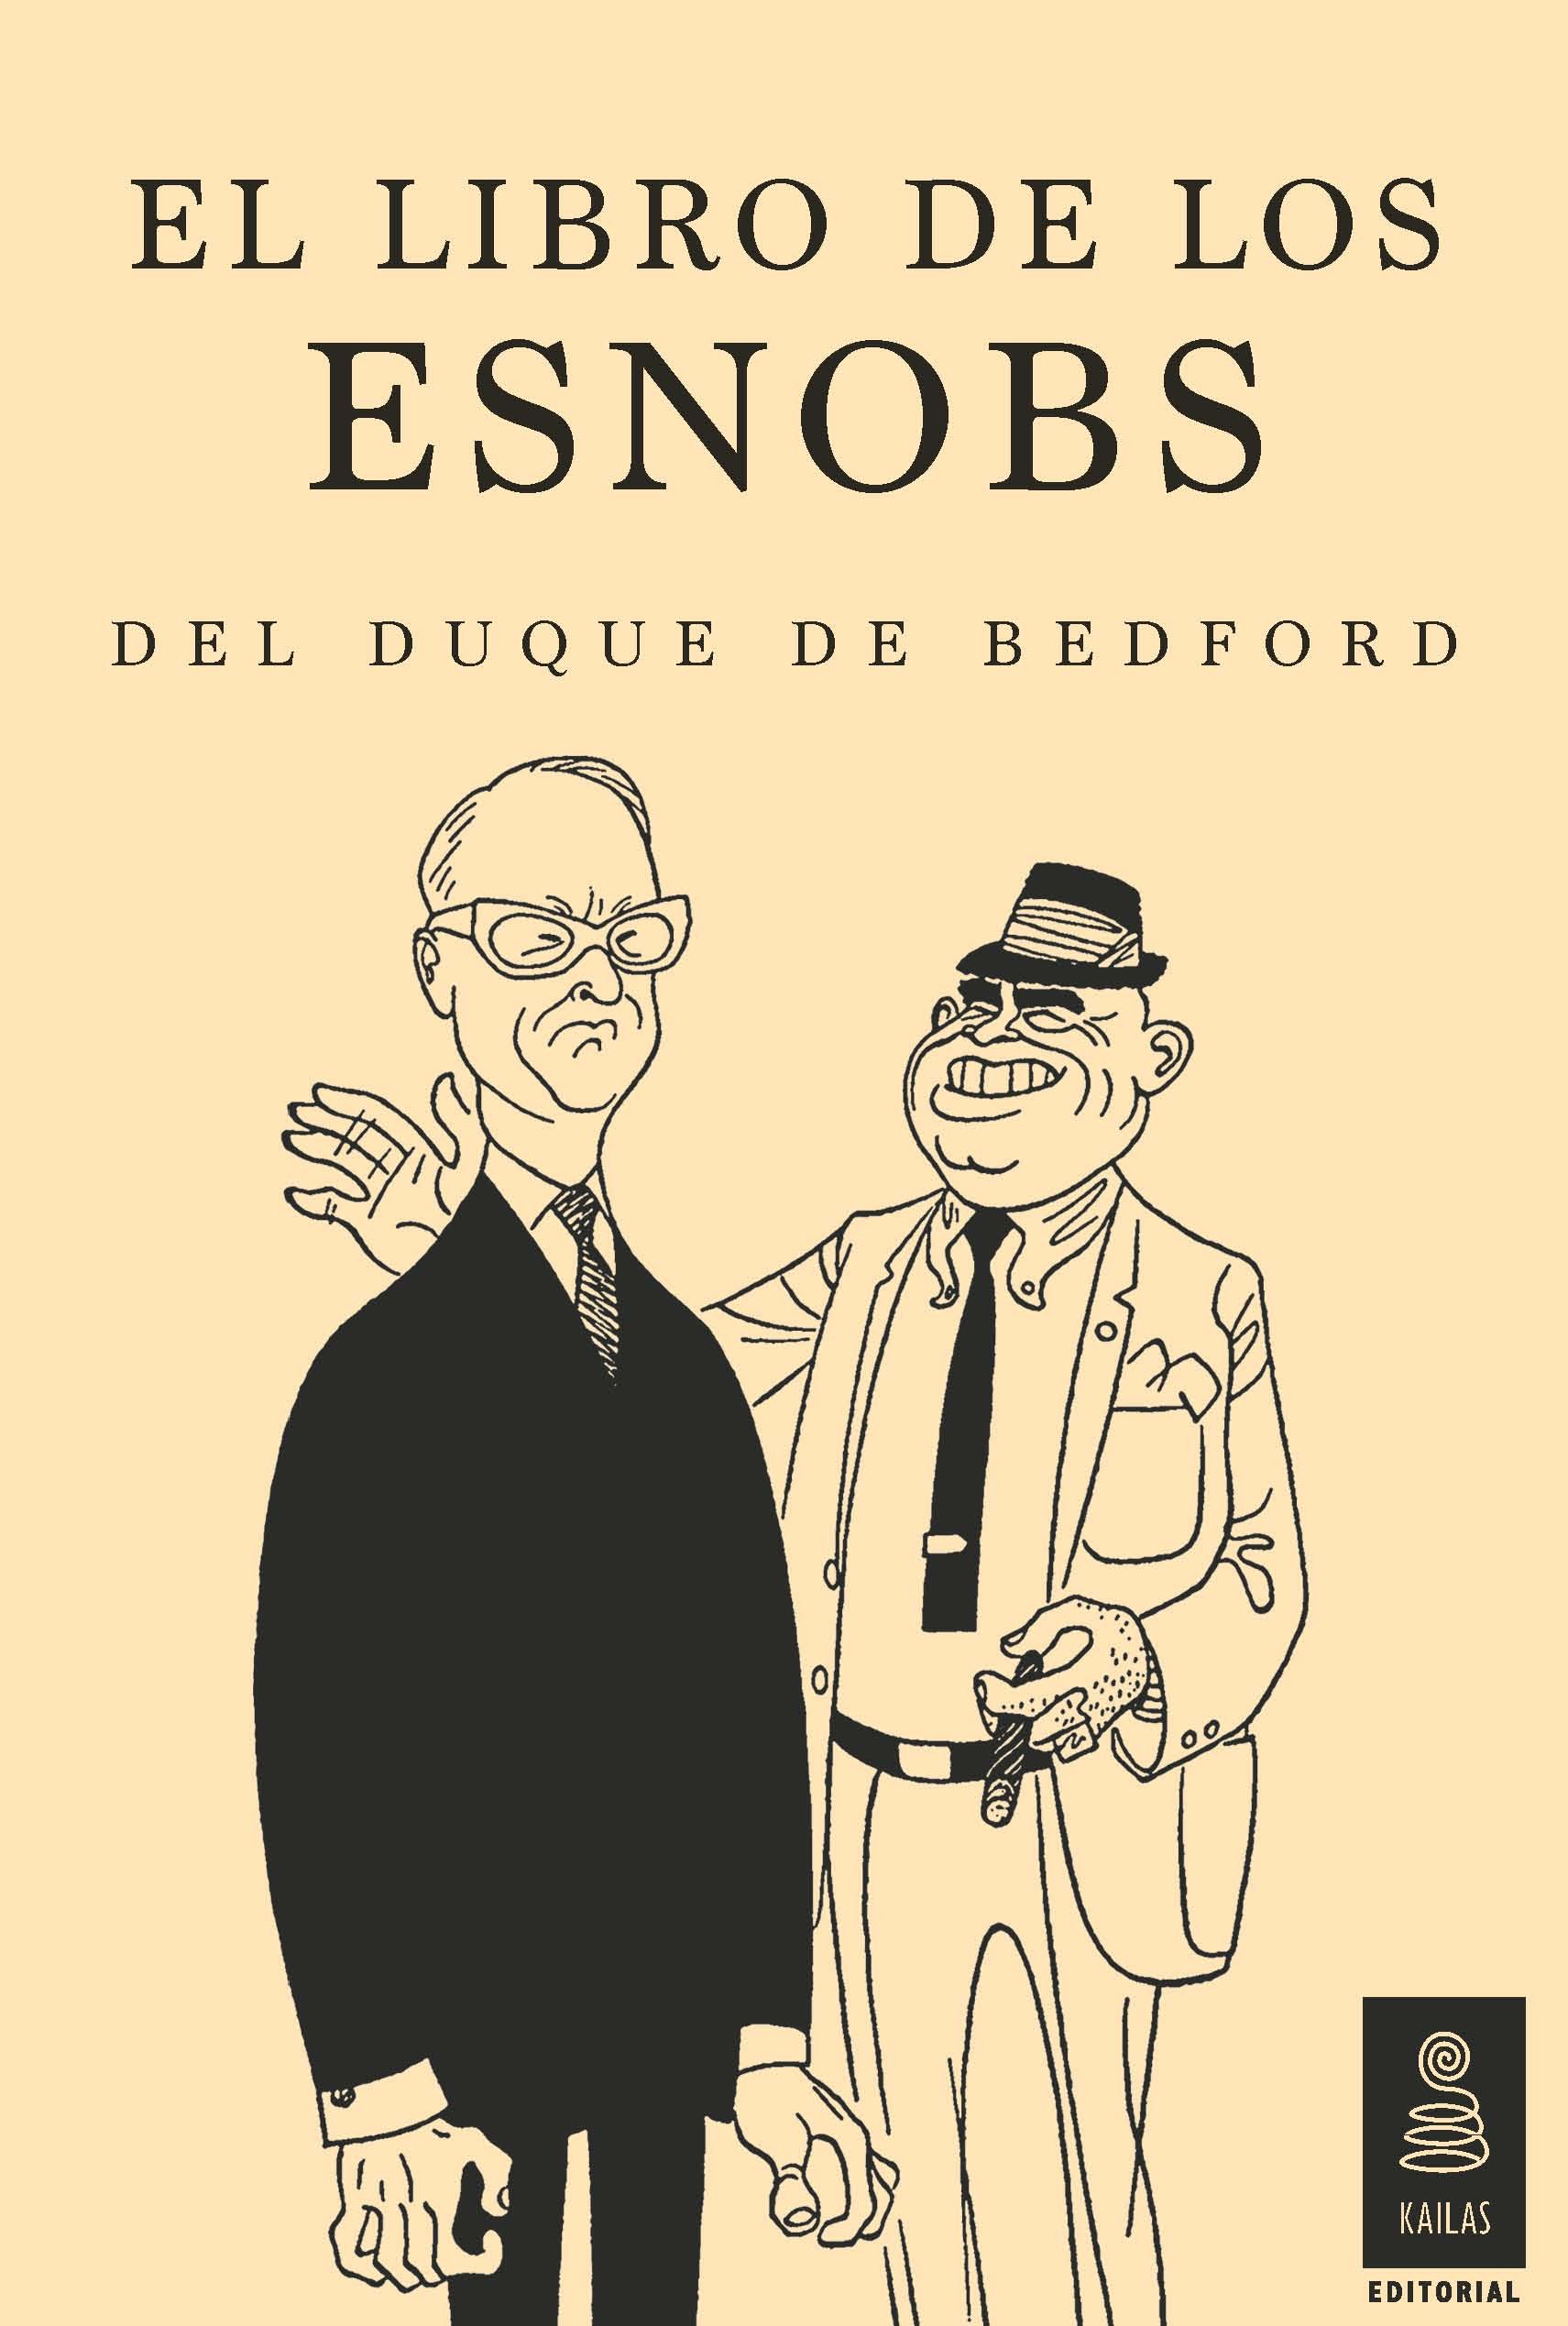 Epub gratis Les edats d'or (a tot vent-beta book 1) (catalan edition) descargar libro